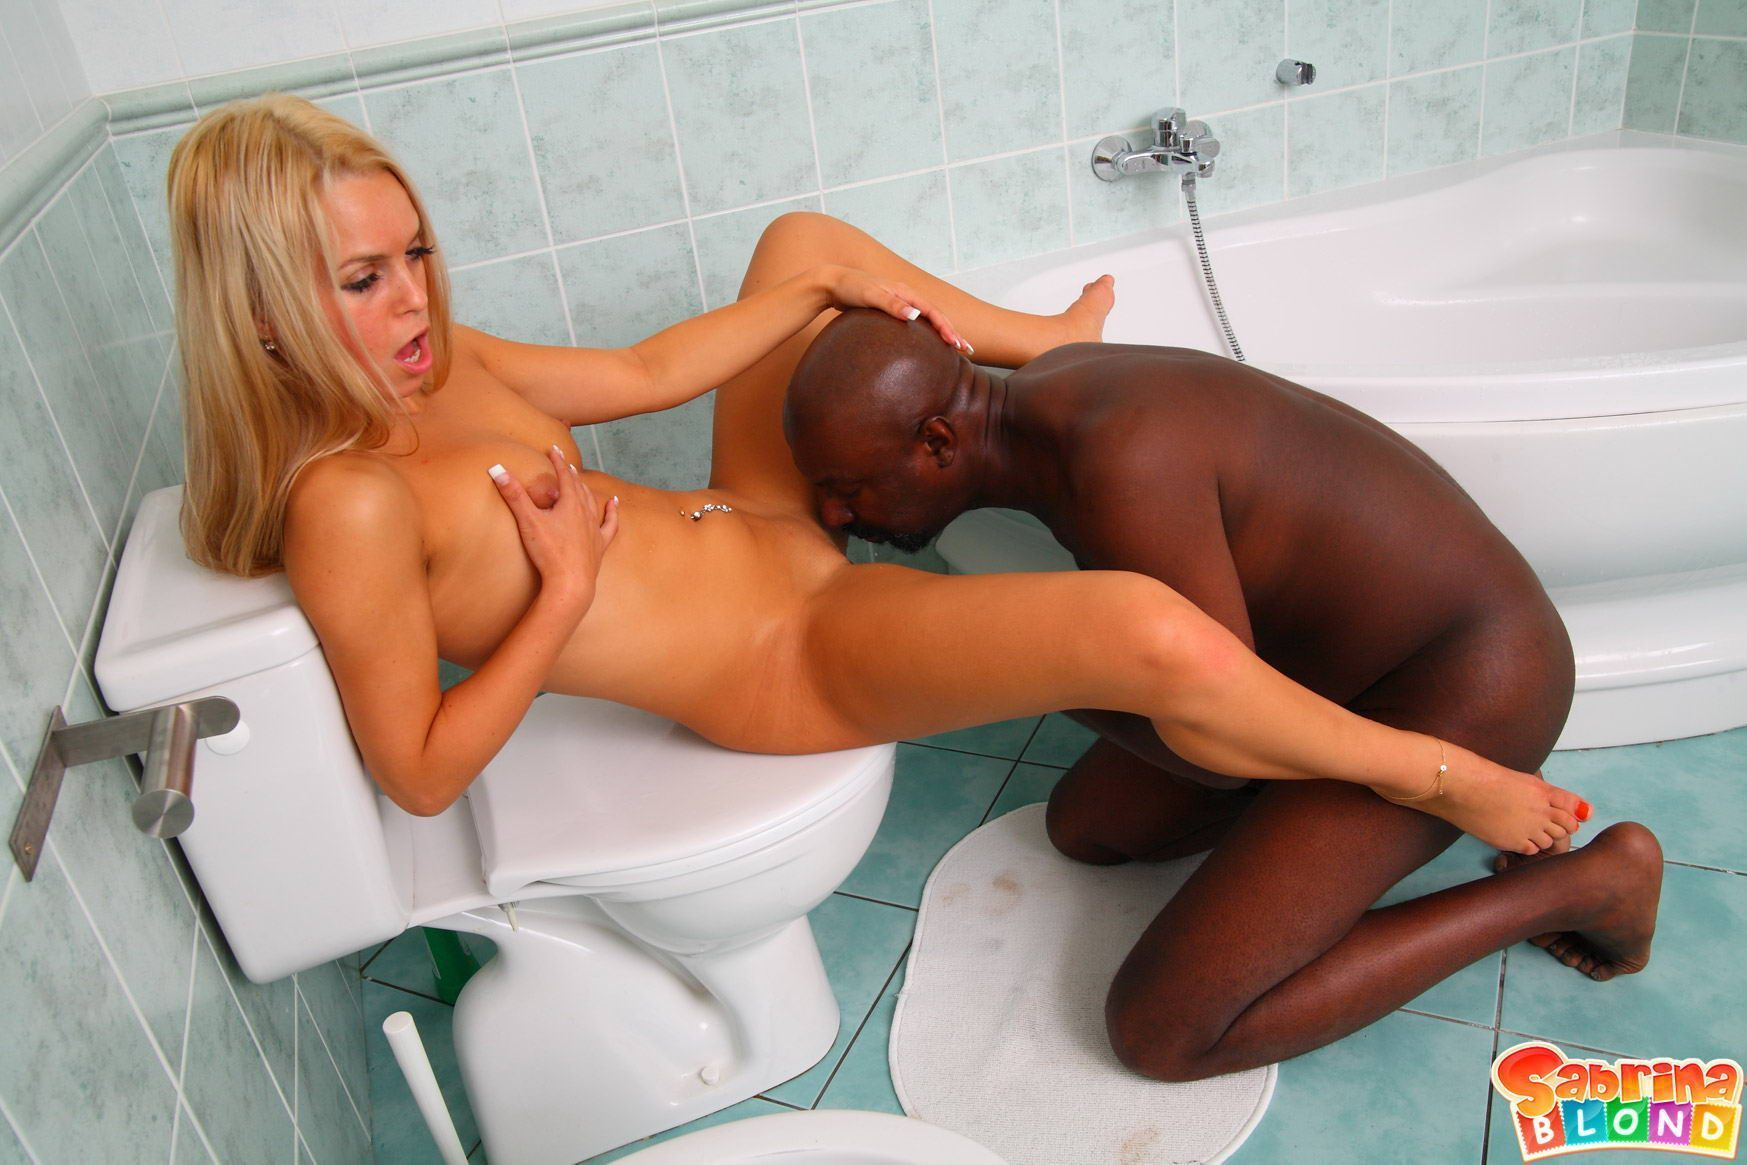 Still that? blond girls nude with black guys join